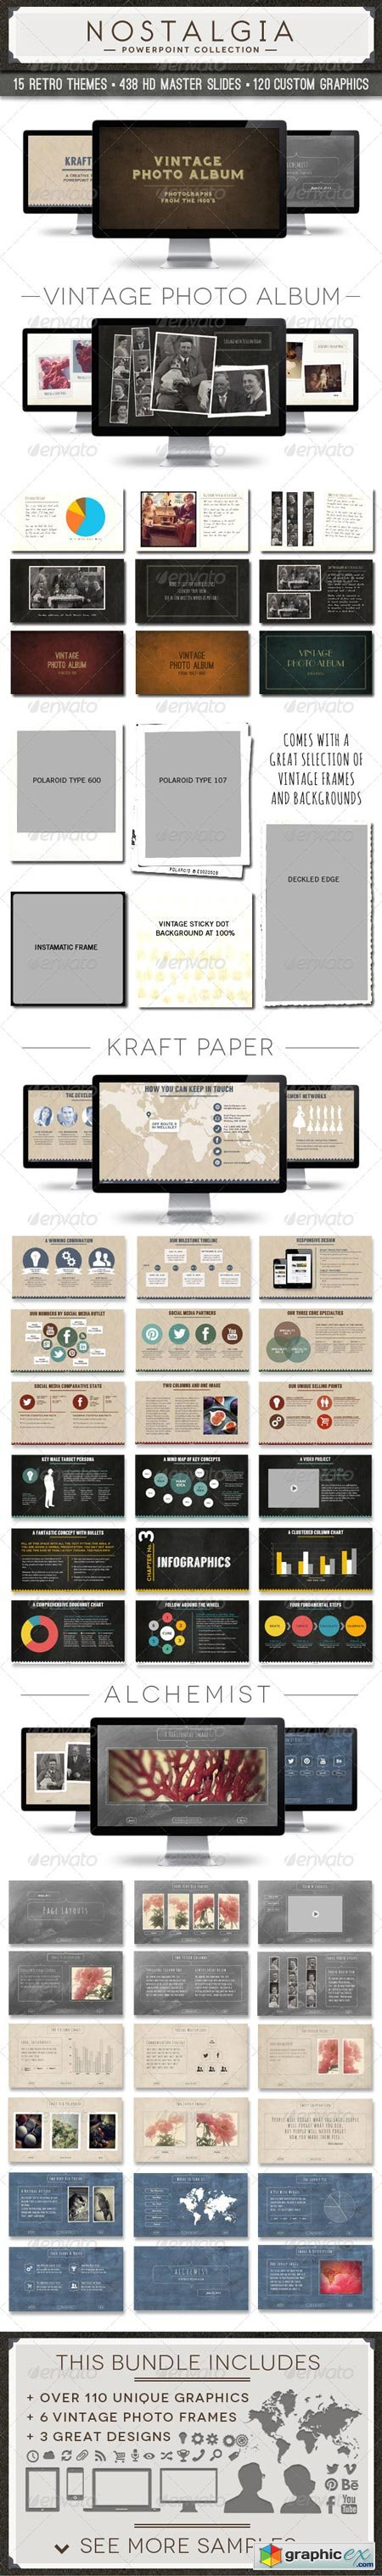 Nostalgia Collection Powerpoint Template Bundle 6794652